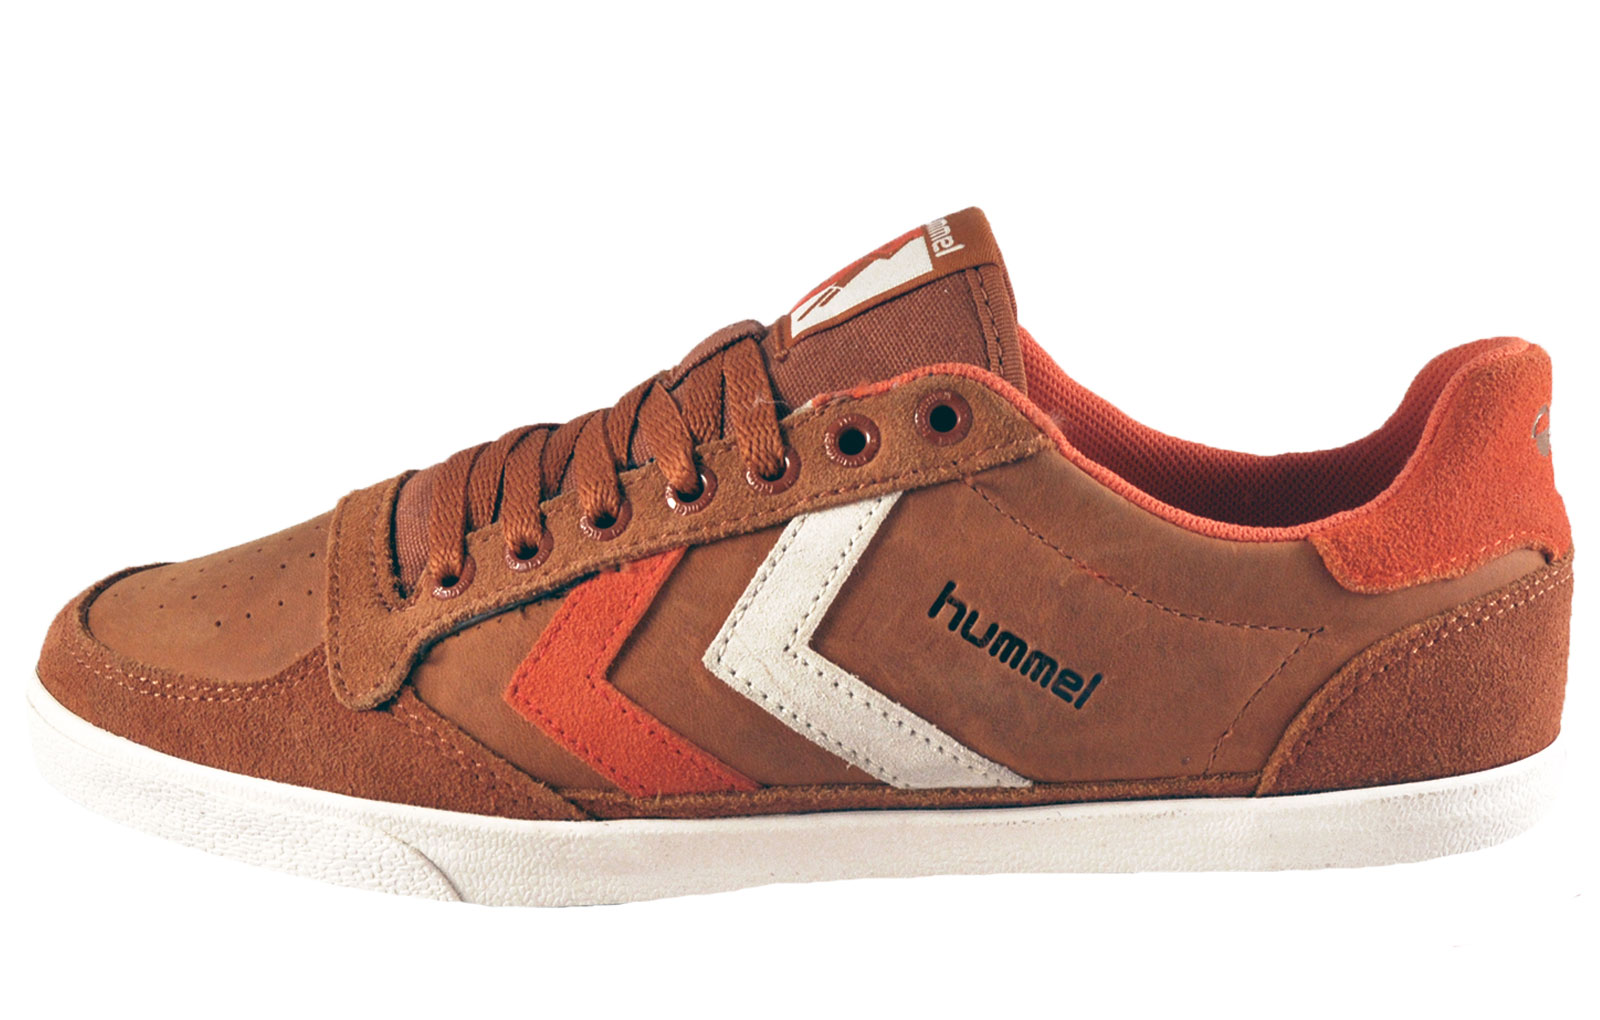 hummel slimmer stadil oiled low classic leather casual retro trainers tan ebay. Black Bedroom Furniture Sets. Home Design Ideas